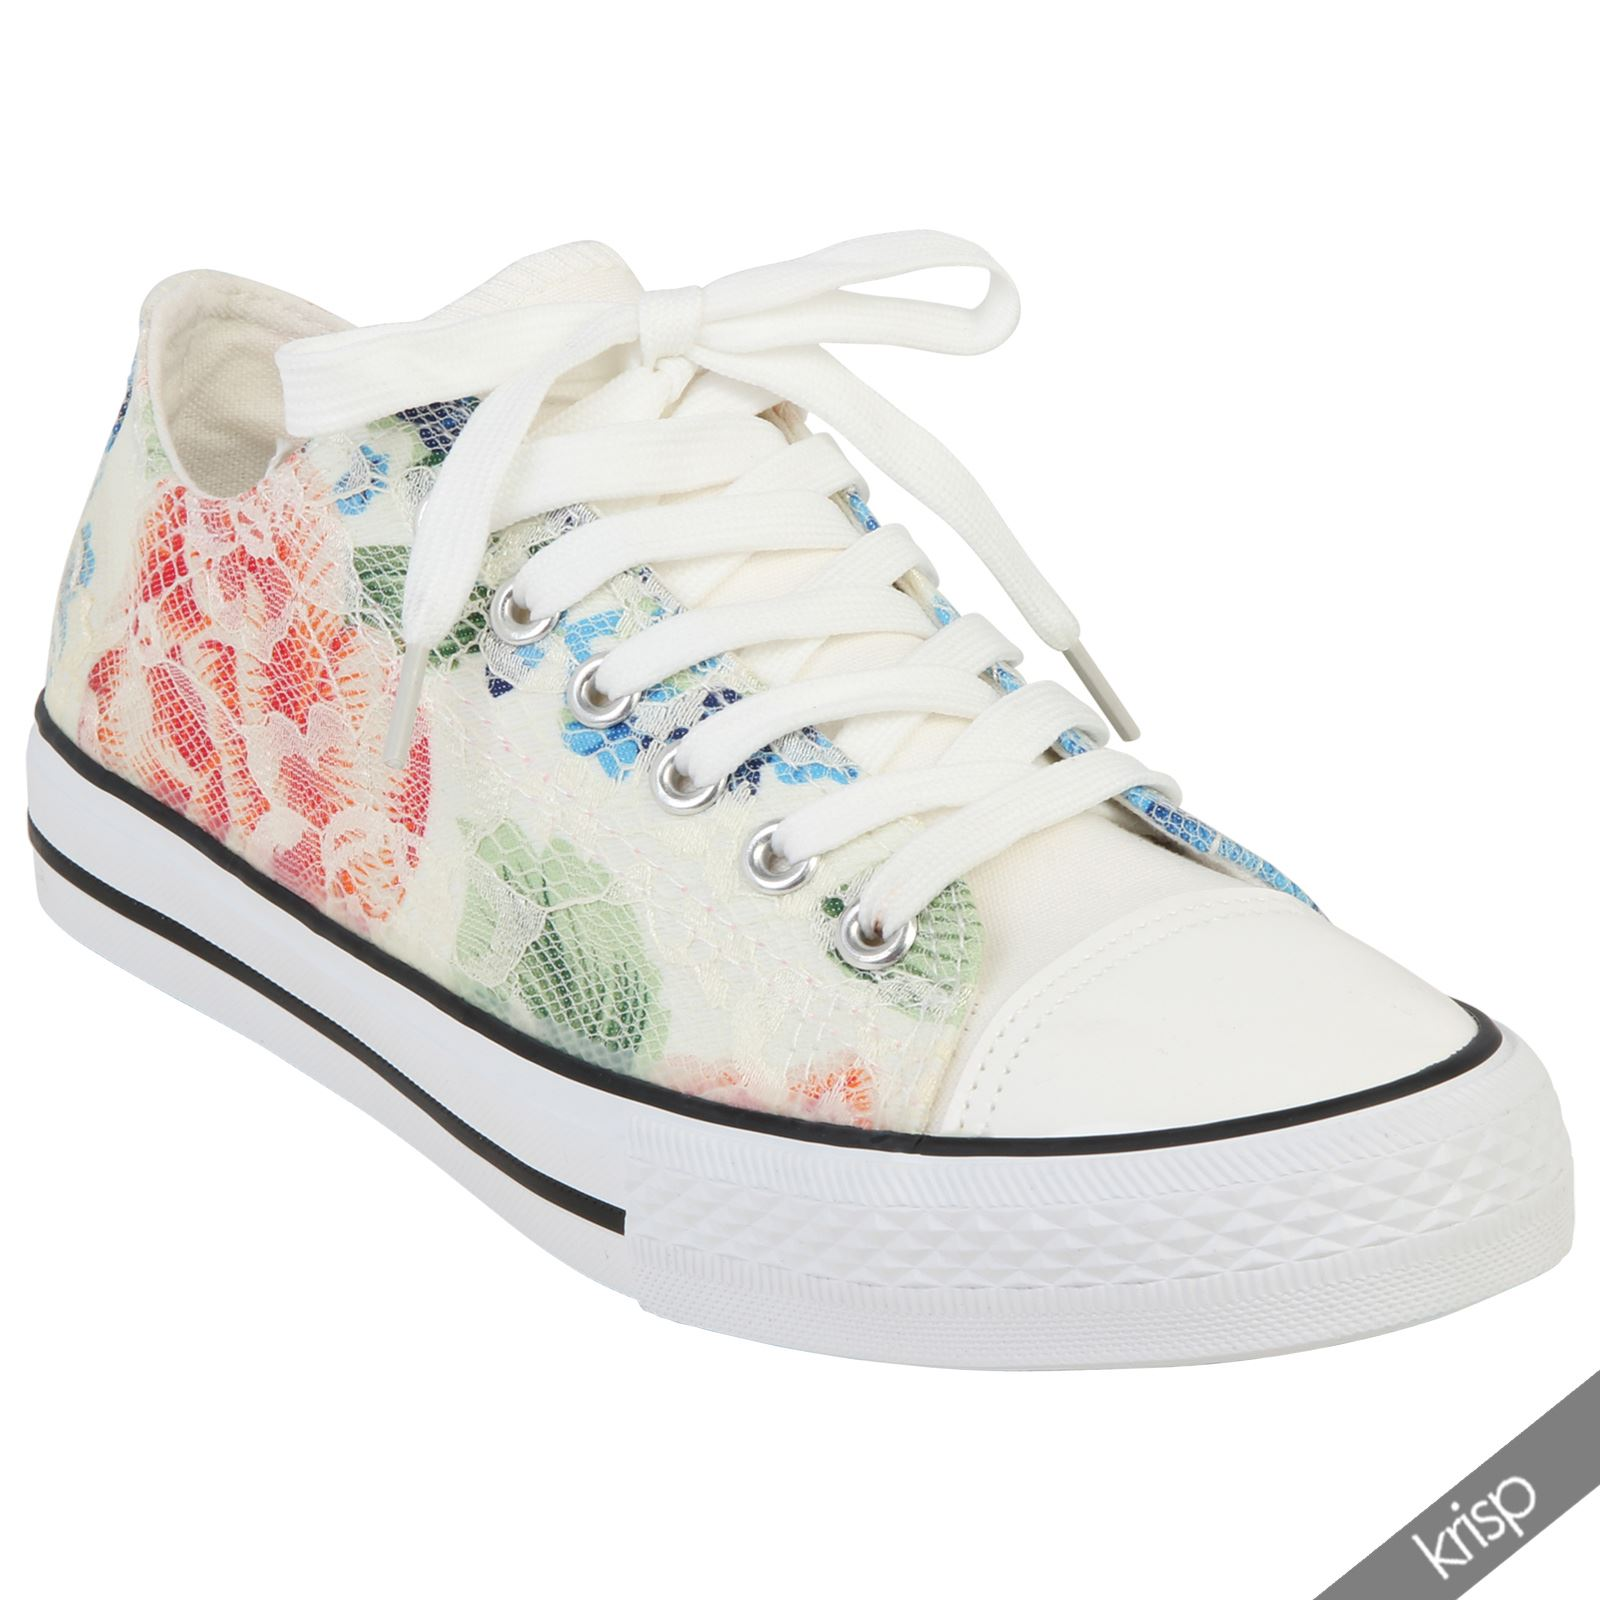 Womens Contrast Floral Lace Plimsolls Trainers Skater Shoes Low Top Pumps Summer